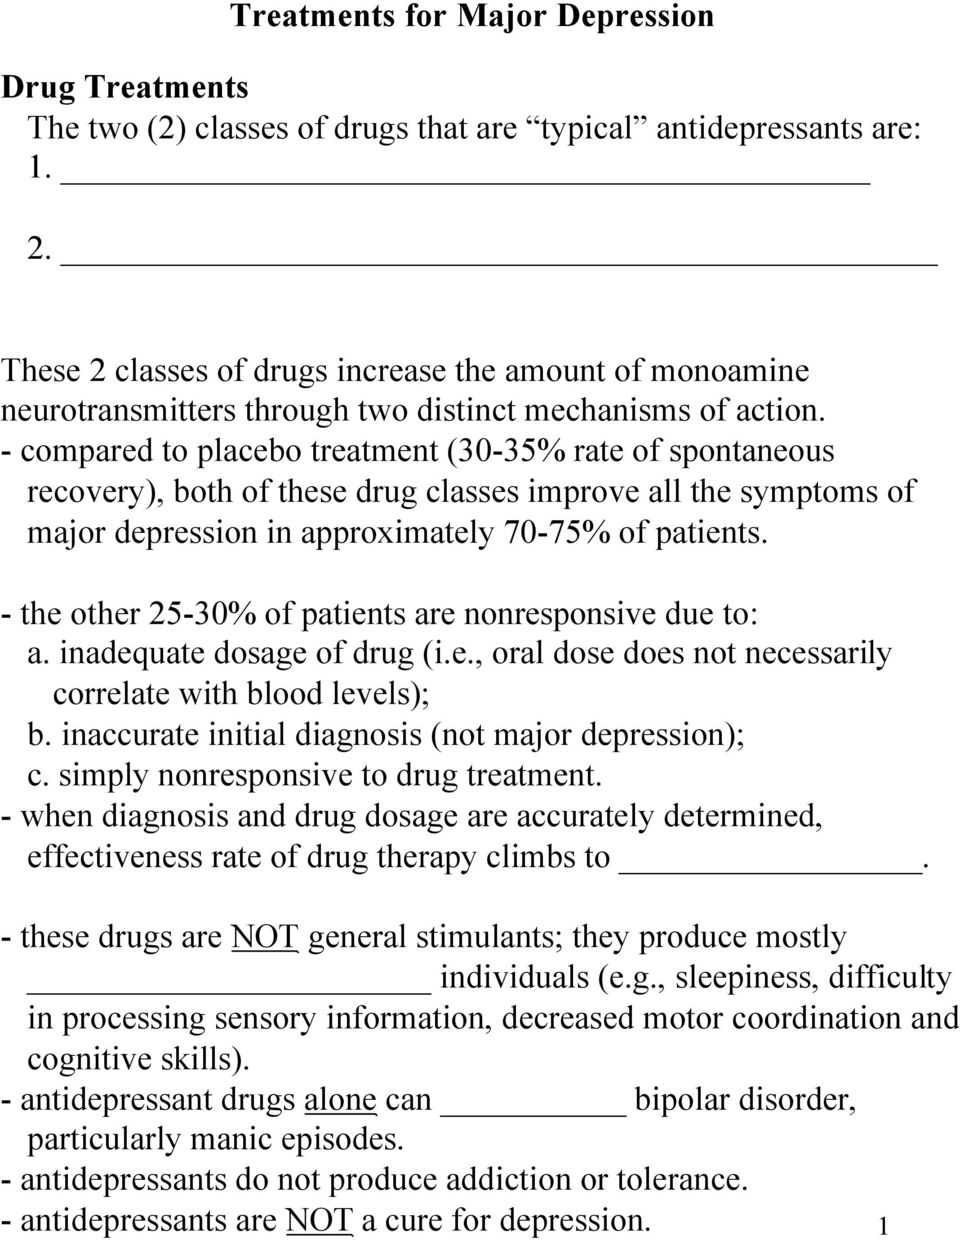 - compared to placebo treatment (30-35% rate of spontaneous recovery), both of these drug classes improve all the symptoms of major depression in approximately 70-75% of patients.